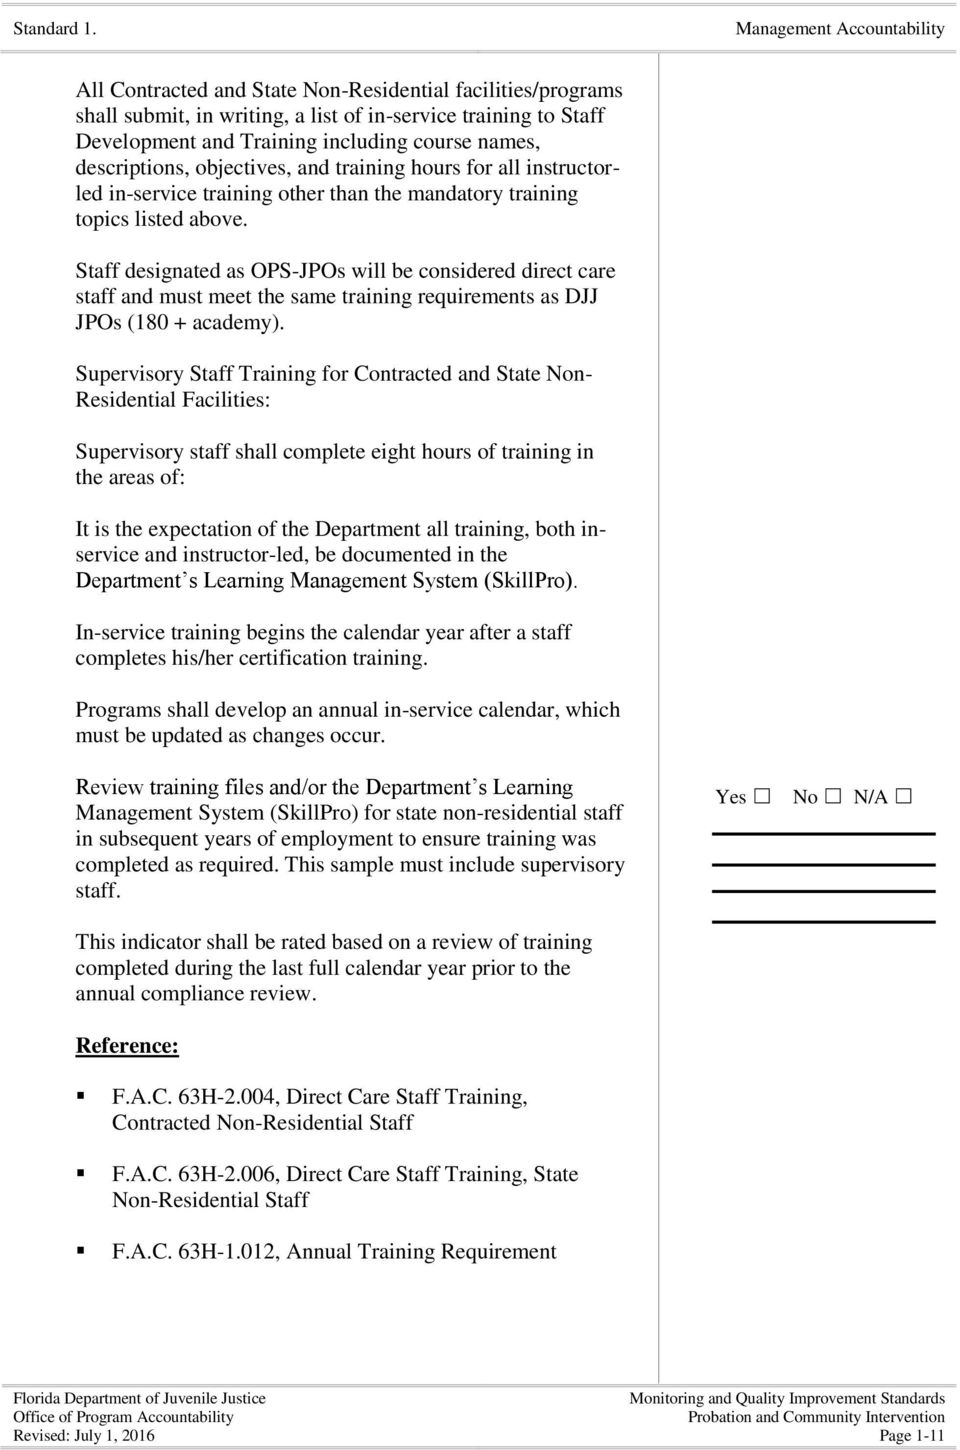 Monitoring and Quality Improvement Standards for - PDF